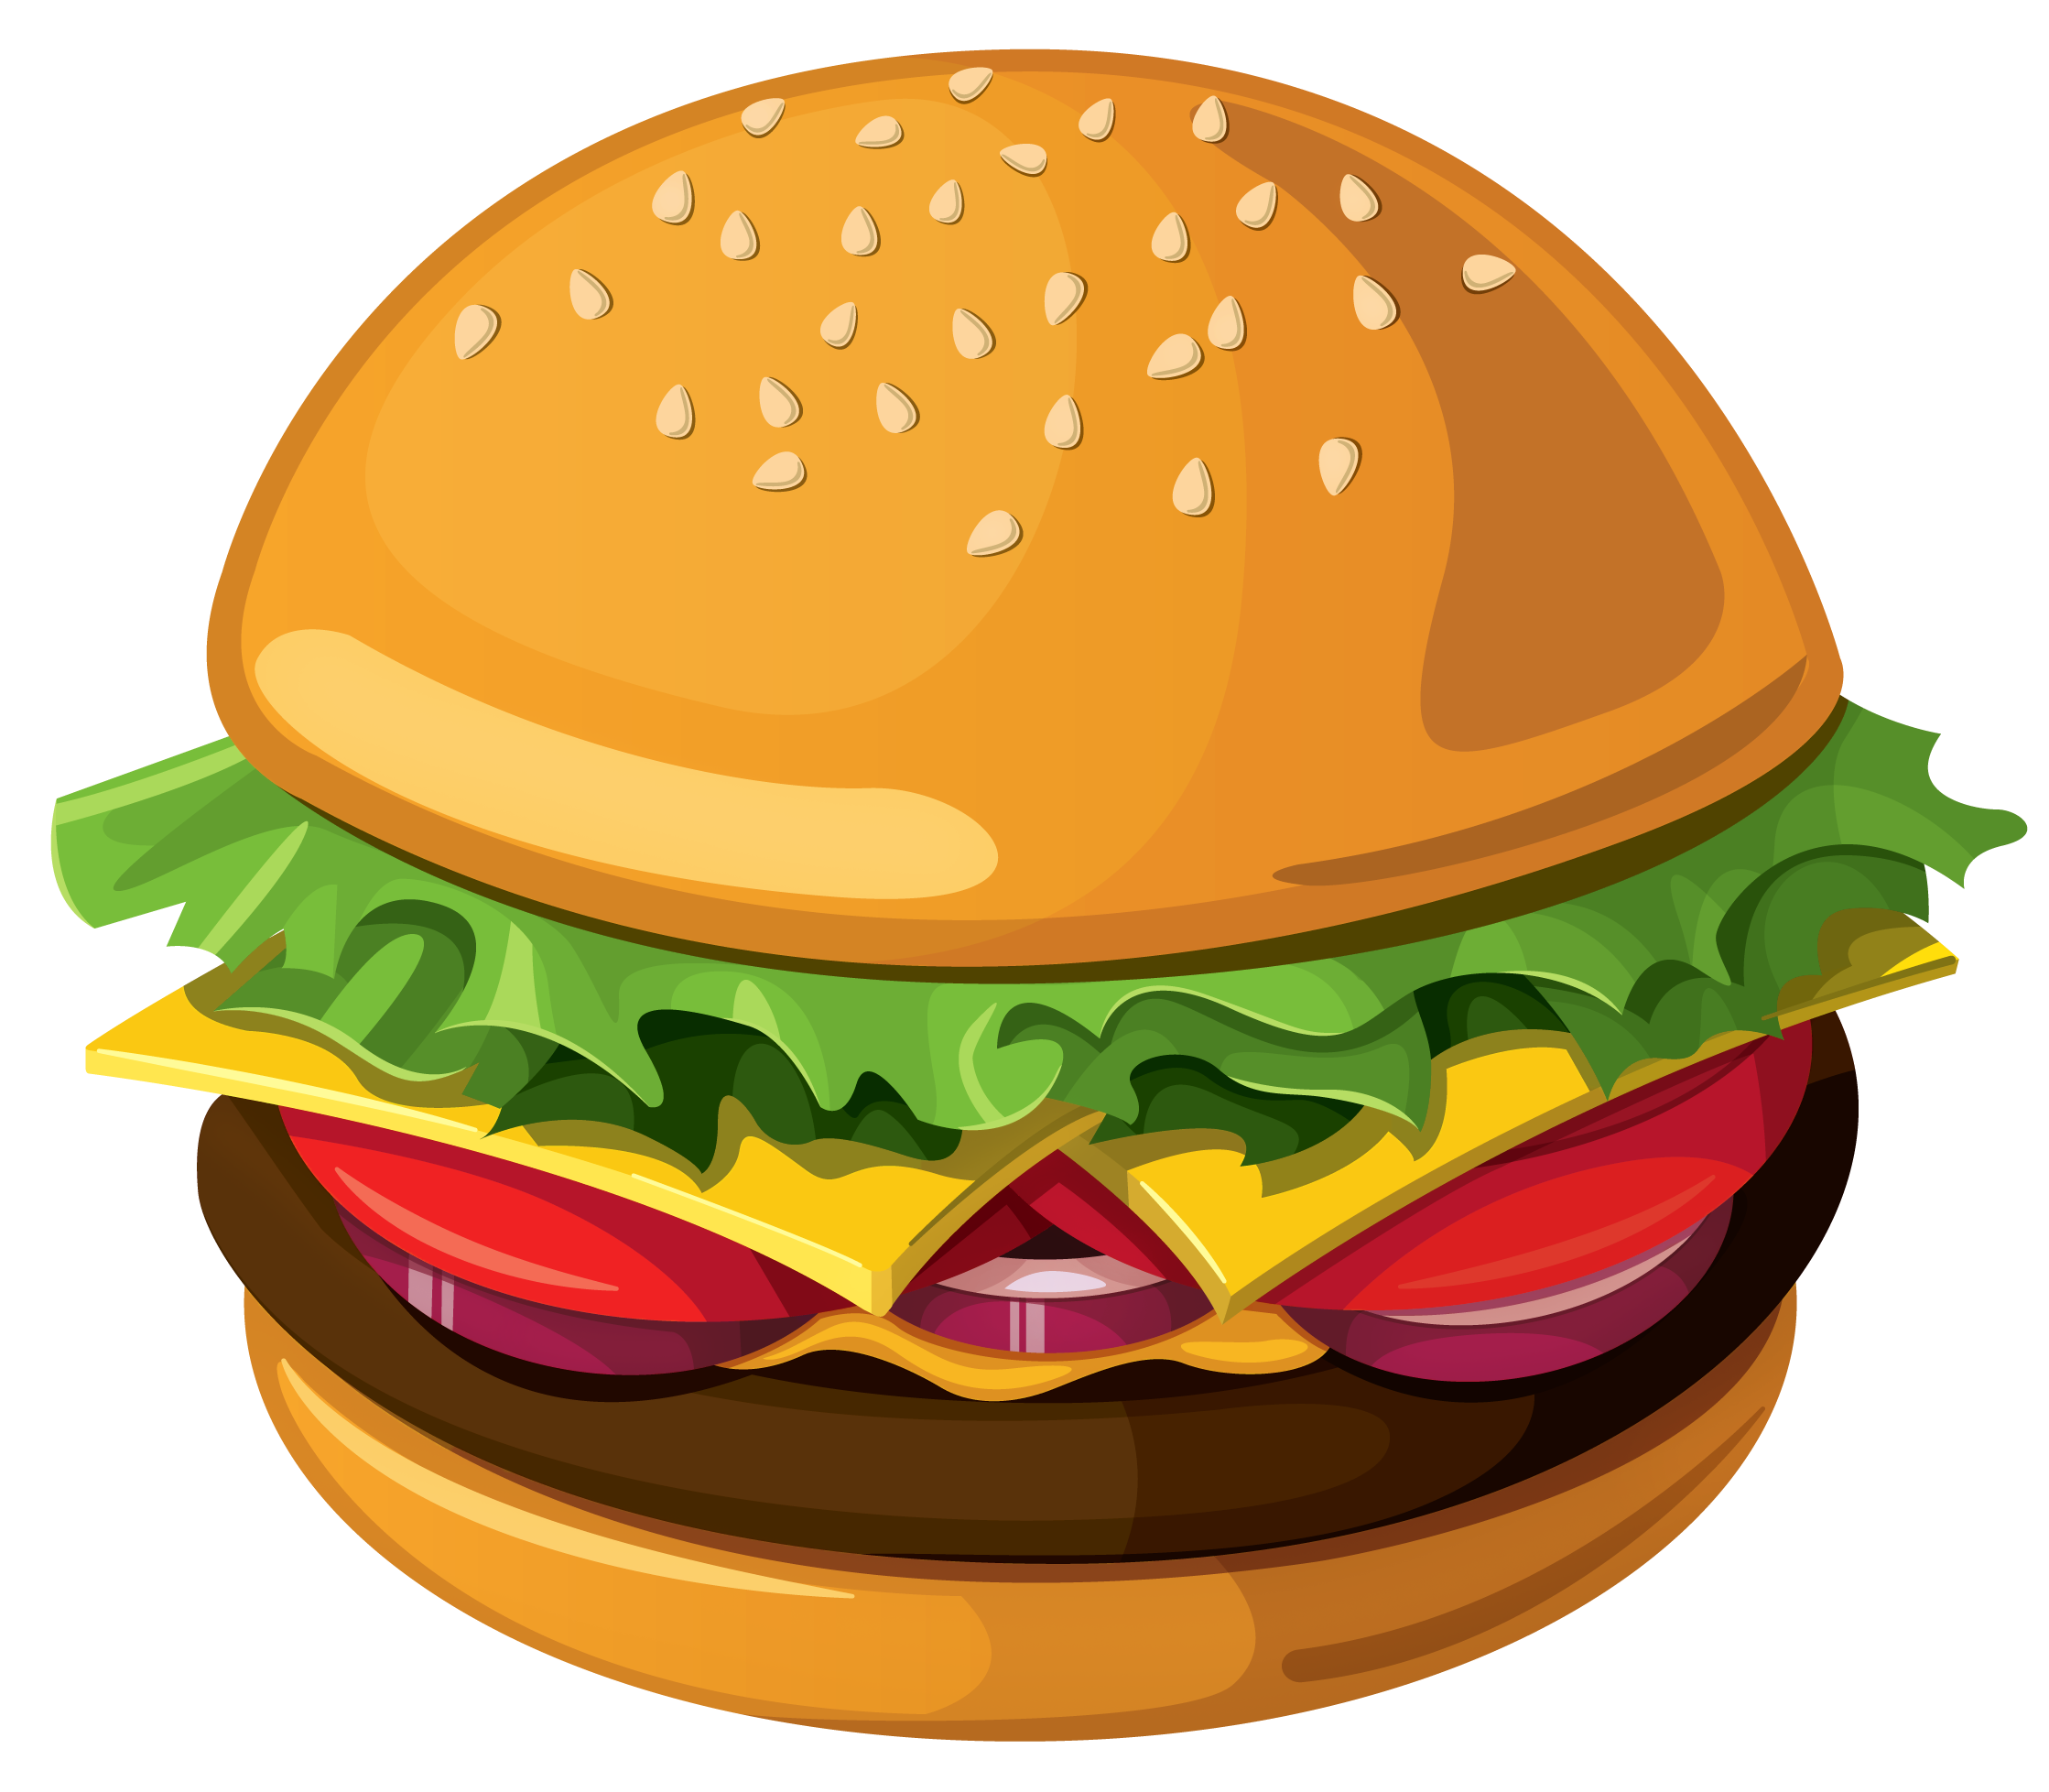 2238x1957 Burger Clipart Chicken Sandwich